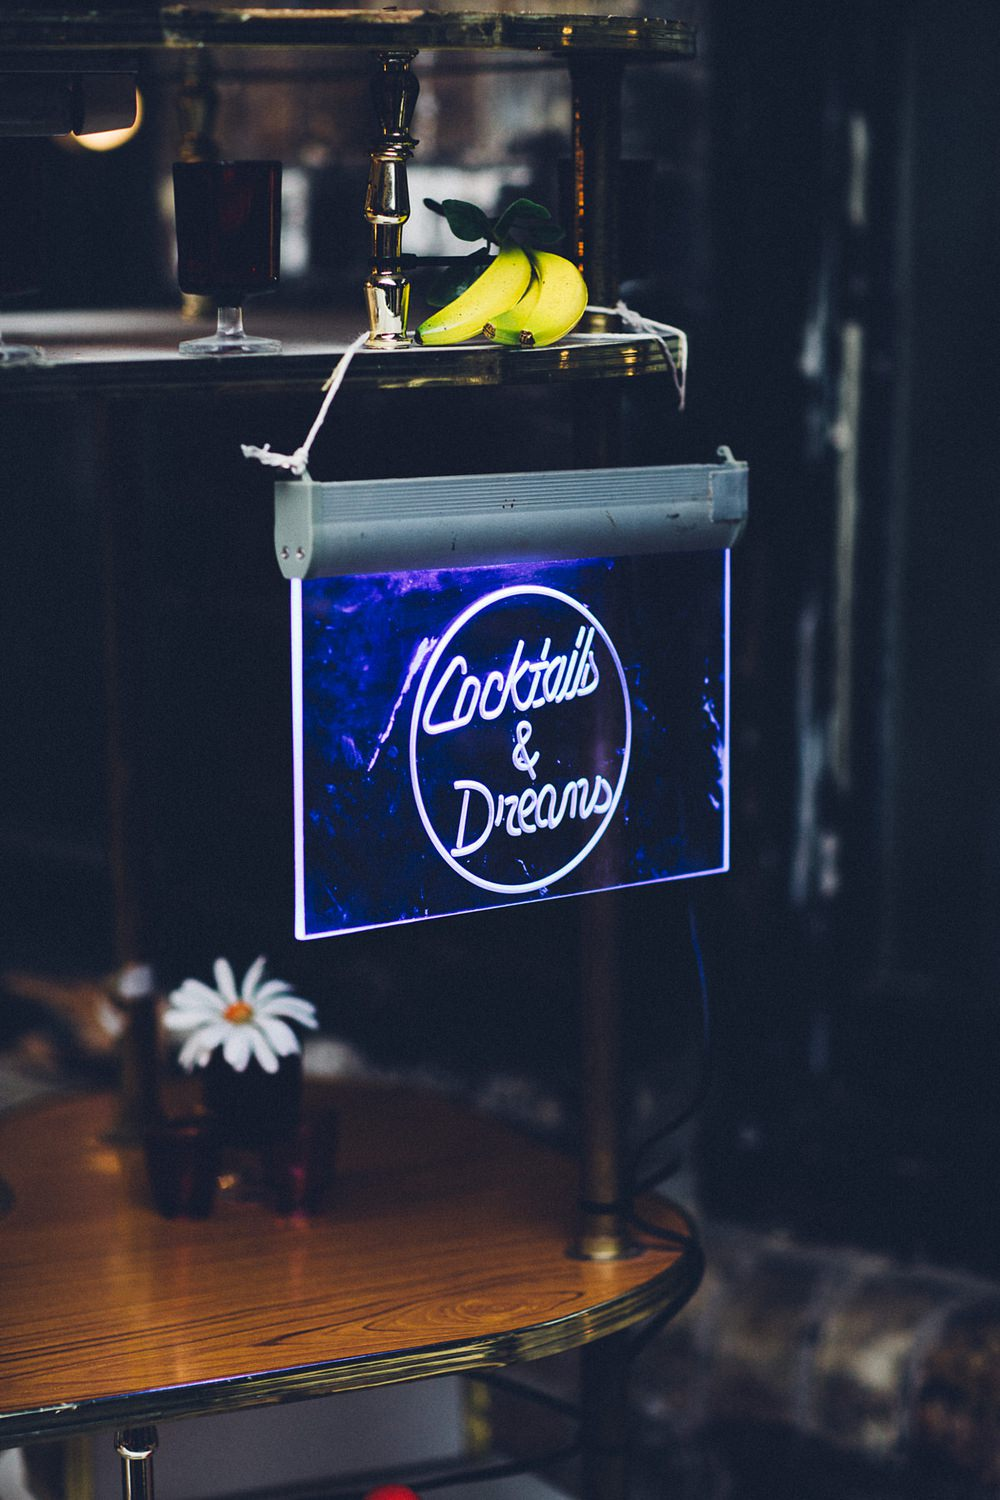 Cocktails & Dreams Neon Sign MC Motors Wedding LoveStruck Photography